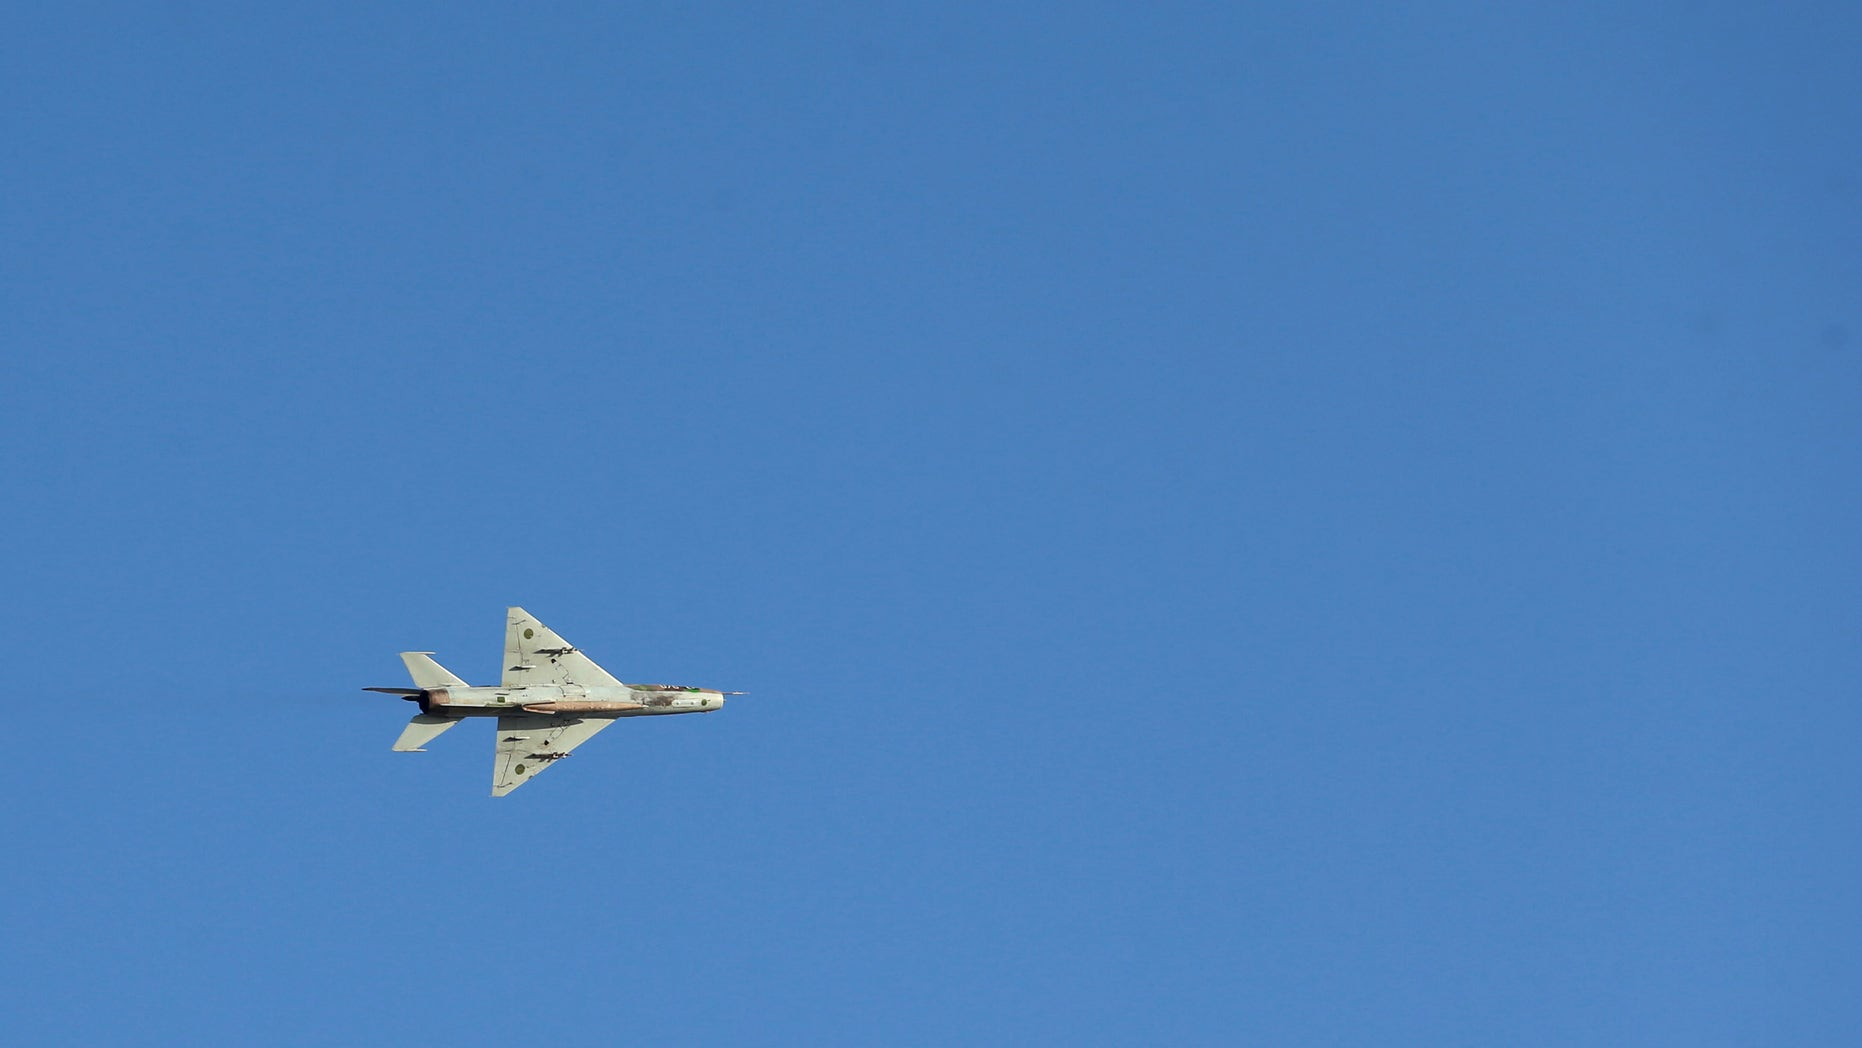 A warplane belonging to Libyan pro-government forces, who are backed by the locals, attempts to bomb sites under the Shura Council of Libyan Revolutionaries, an alliance of former anti-Gaddafi rebels who have joined forces with the Islamist group Ansar al-Sharia, during clashes in Libya April 27, 2016. (REUTERS/Esam Omran Al-Fetori)